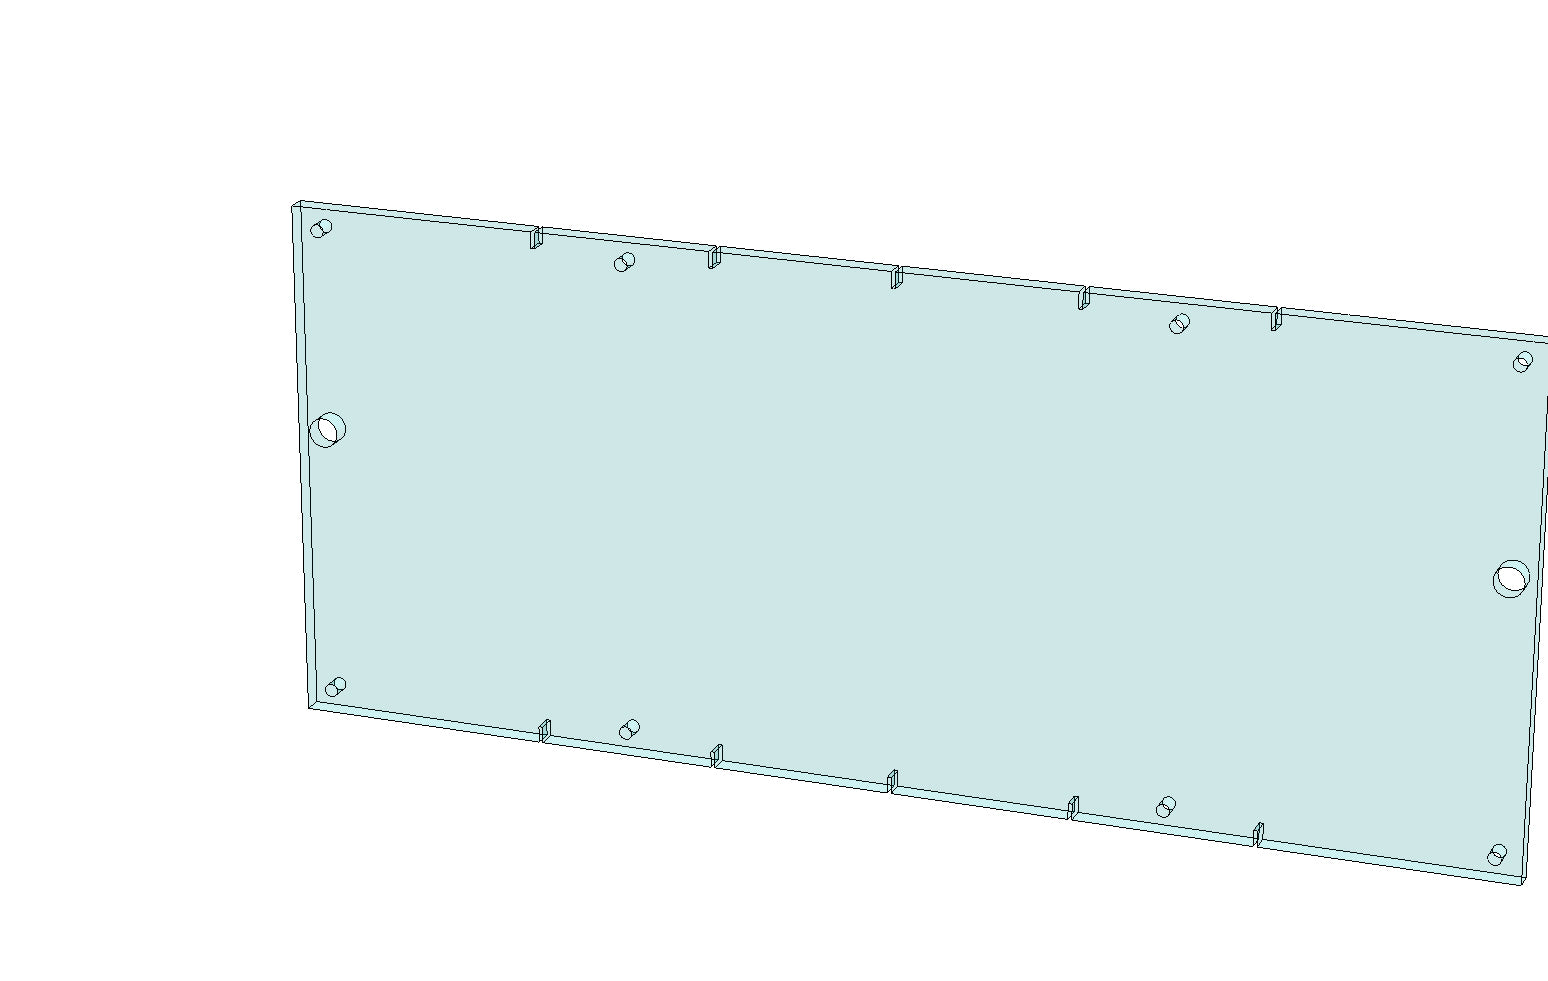 SCM 10952 - CHUTE FRONT WINDOW | Spare Parts for King, Kalish and Swiftpack Packaging Machines